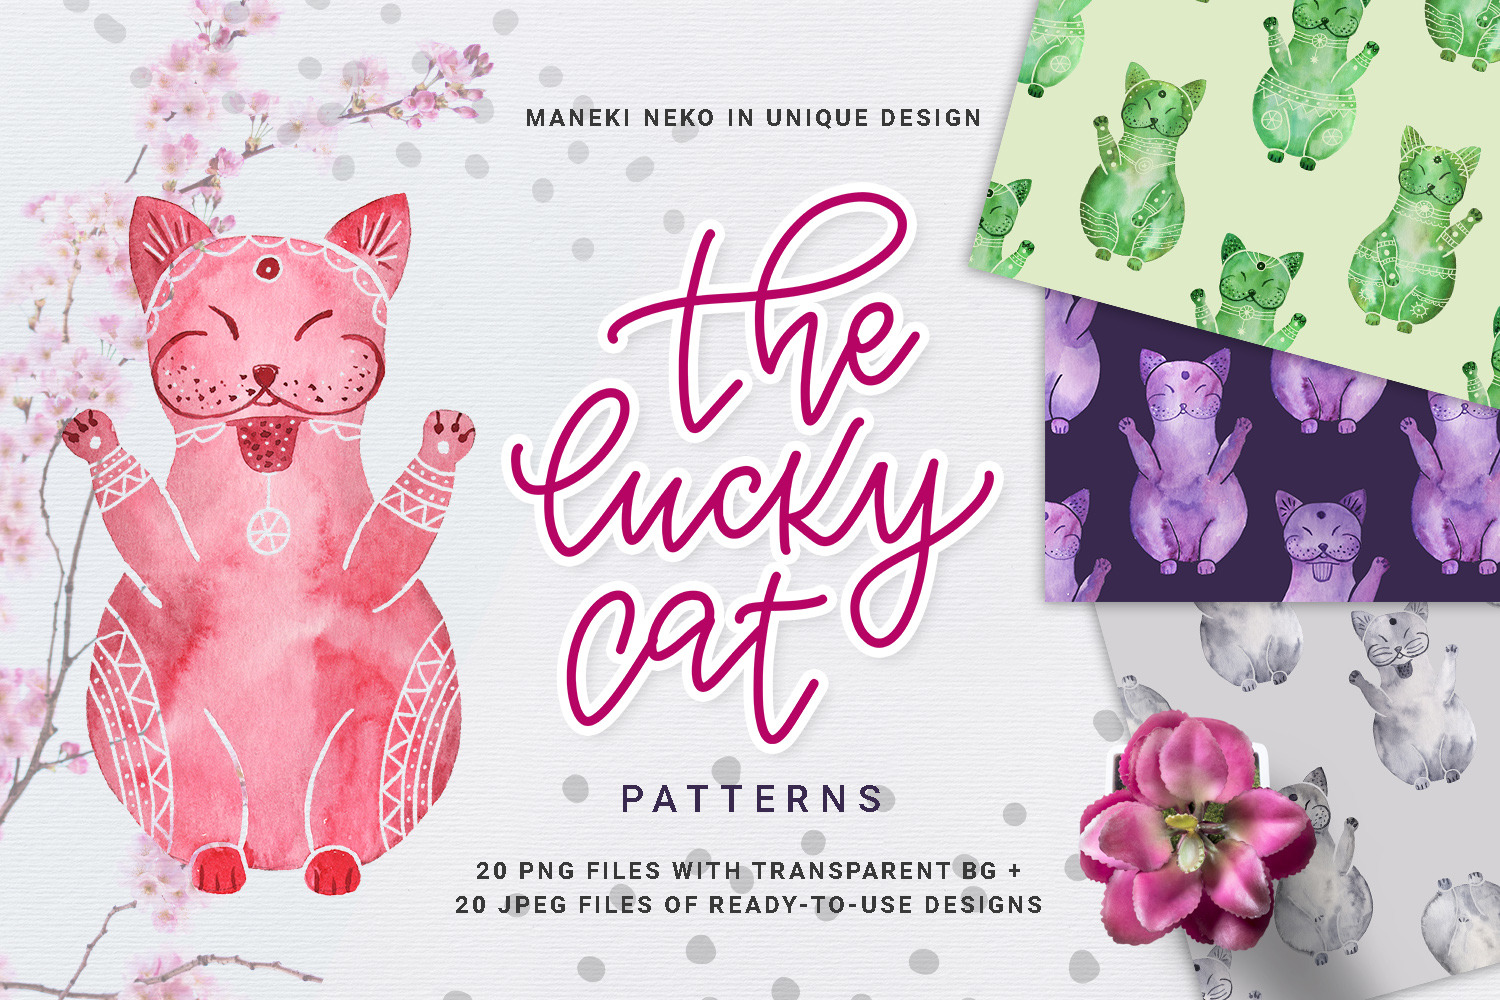 The Lucky Cat - Patterns